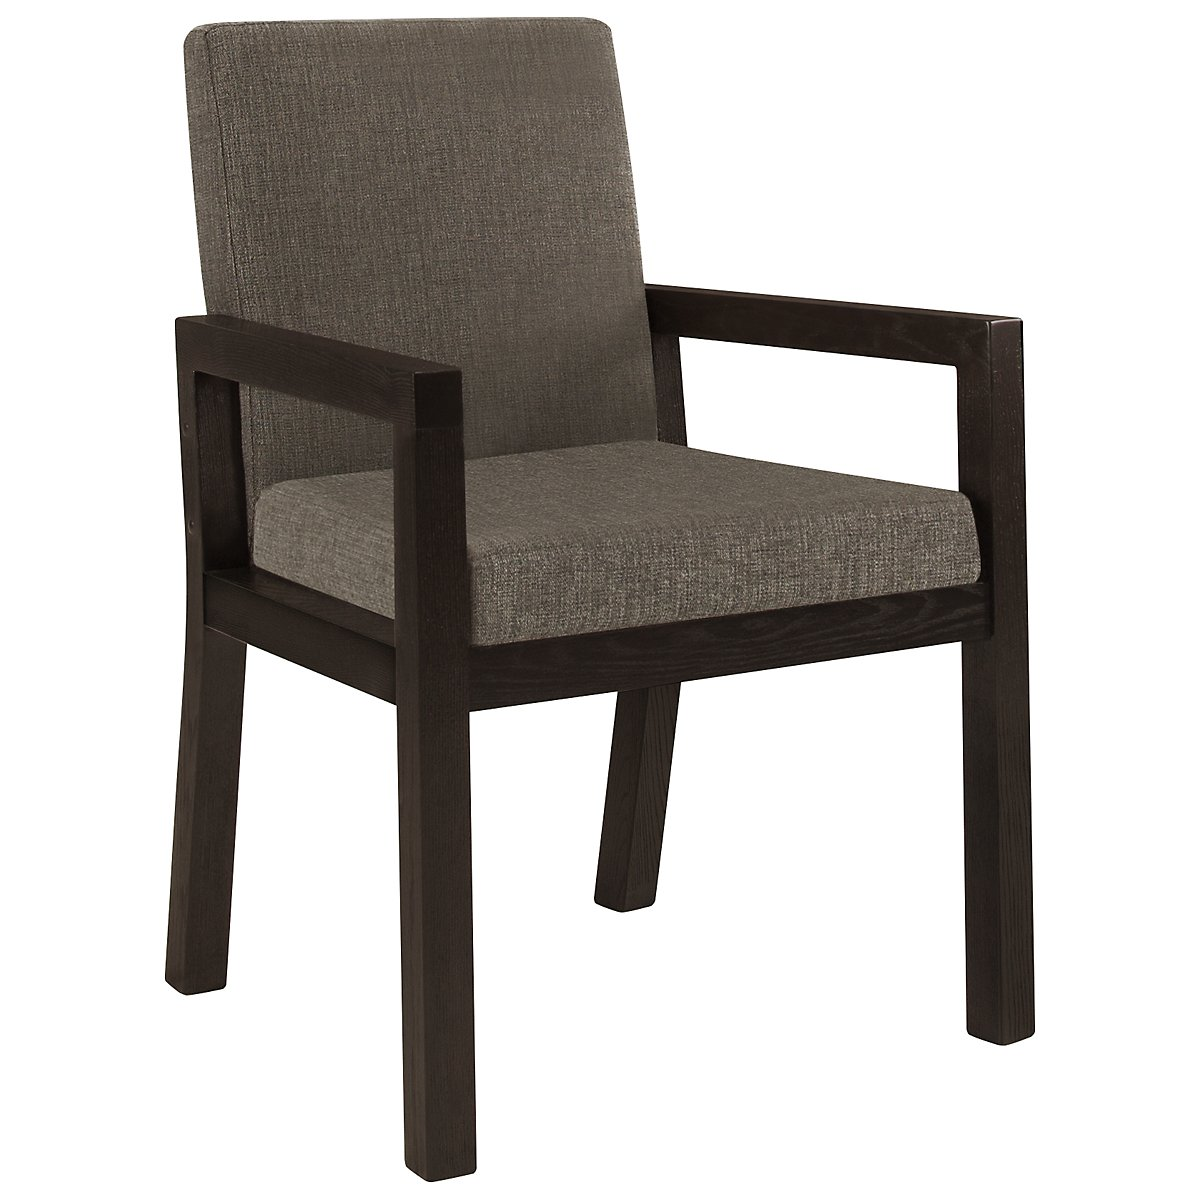 City furniture tocara dk gray upholstered arm chair